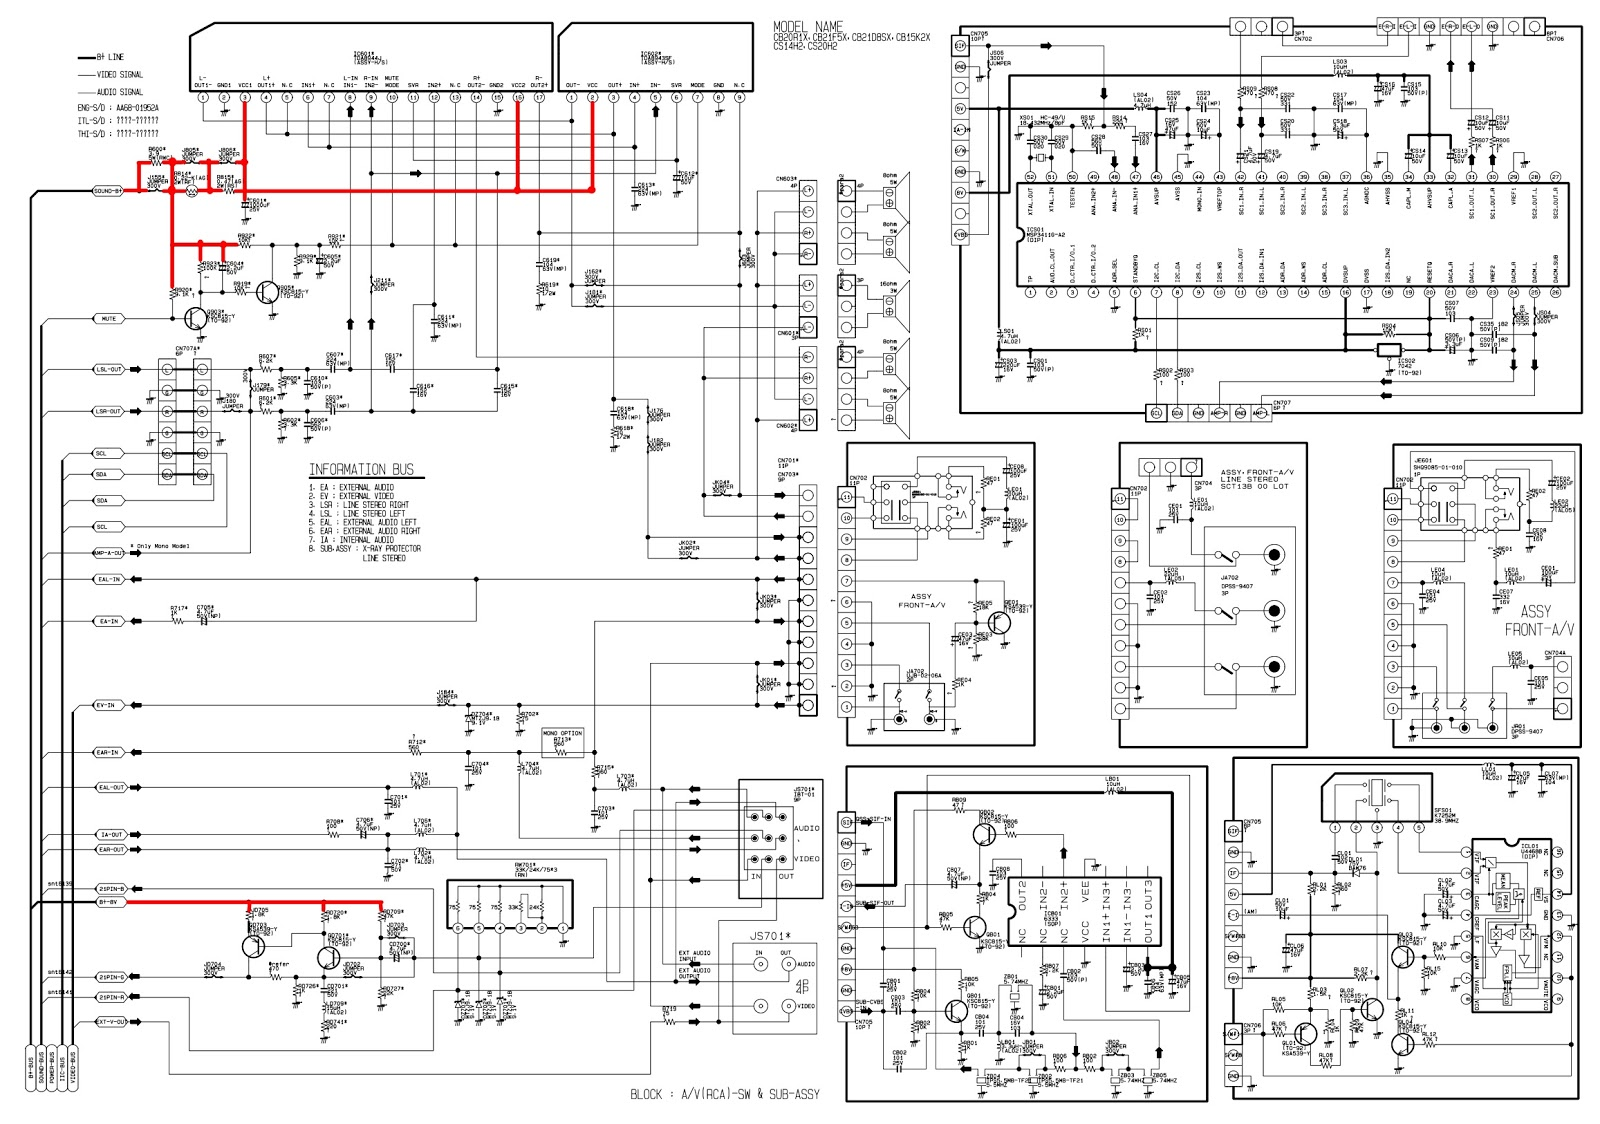 Schematic Diagrams Samsung Cs21m16mjzxnwt Crt Tv How To